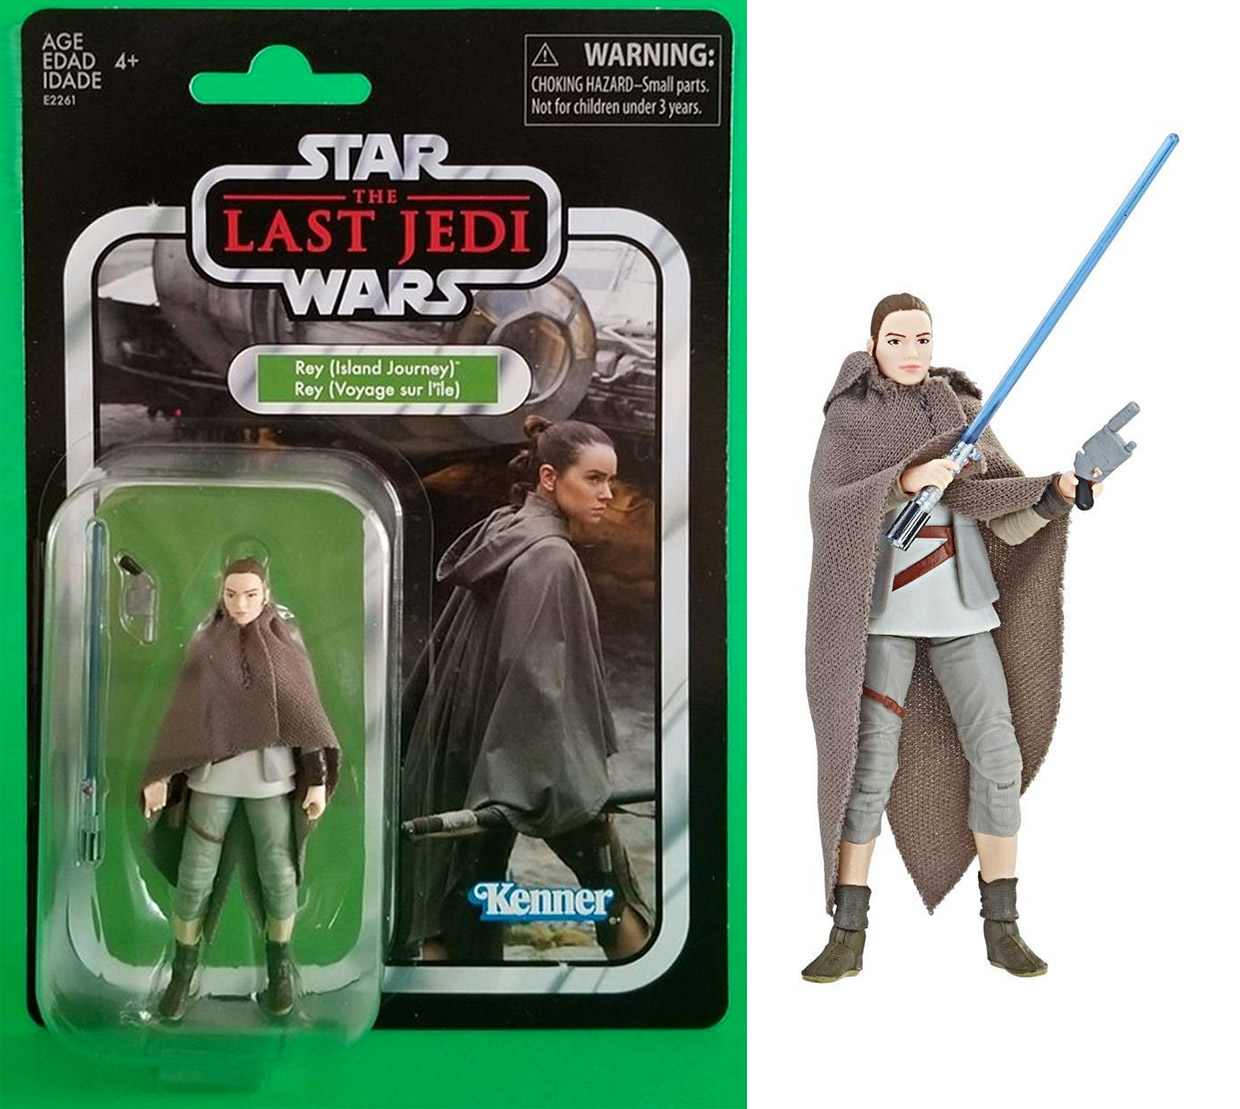 Star Wars The Vintage Collection Rey Action Figure Looks Like the '70s - Technabob